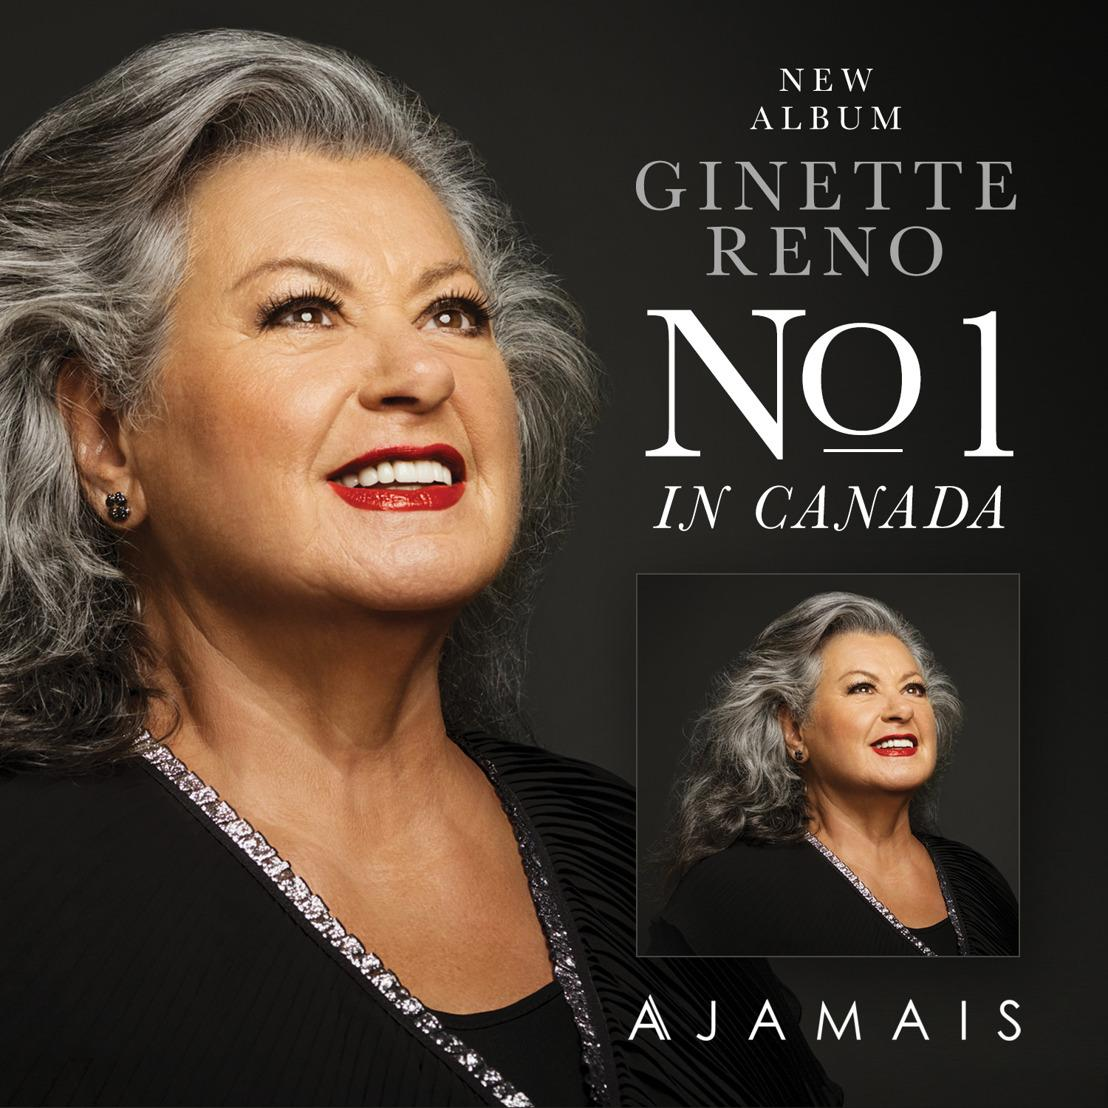 Quebec Superstar Ginette Reno Holds The Number 1 Spot In Canada For Second Week In A Row